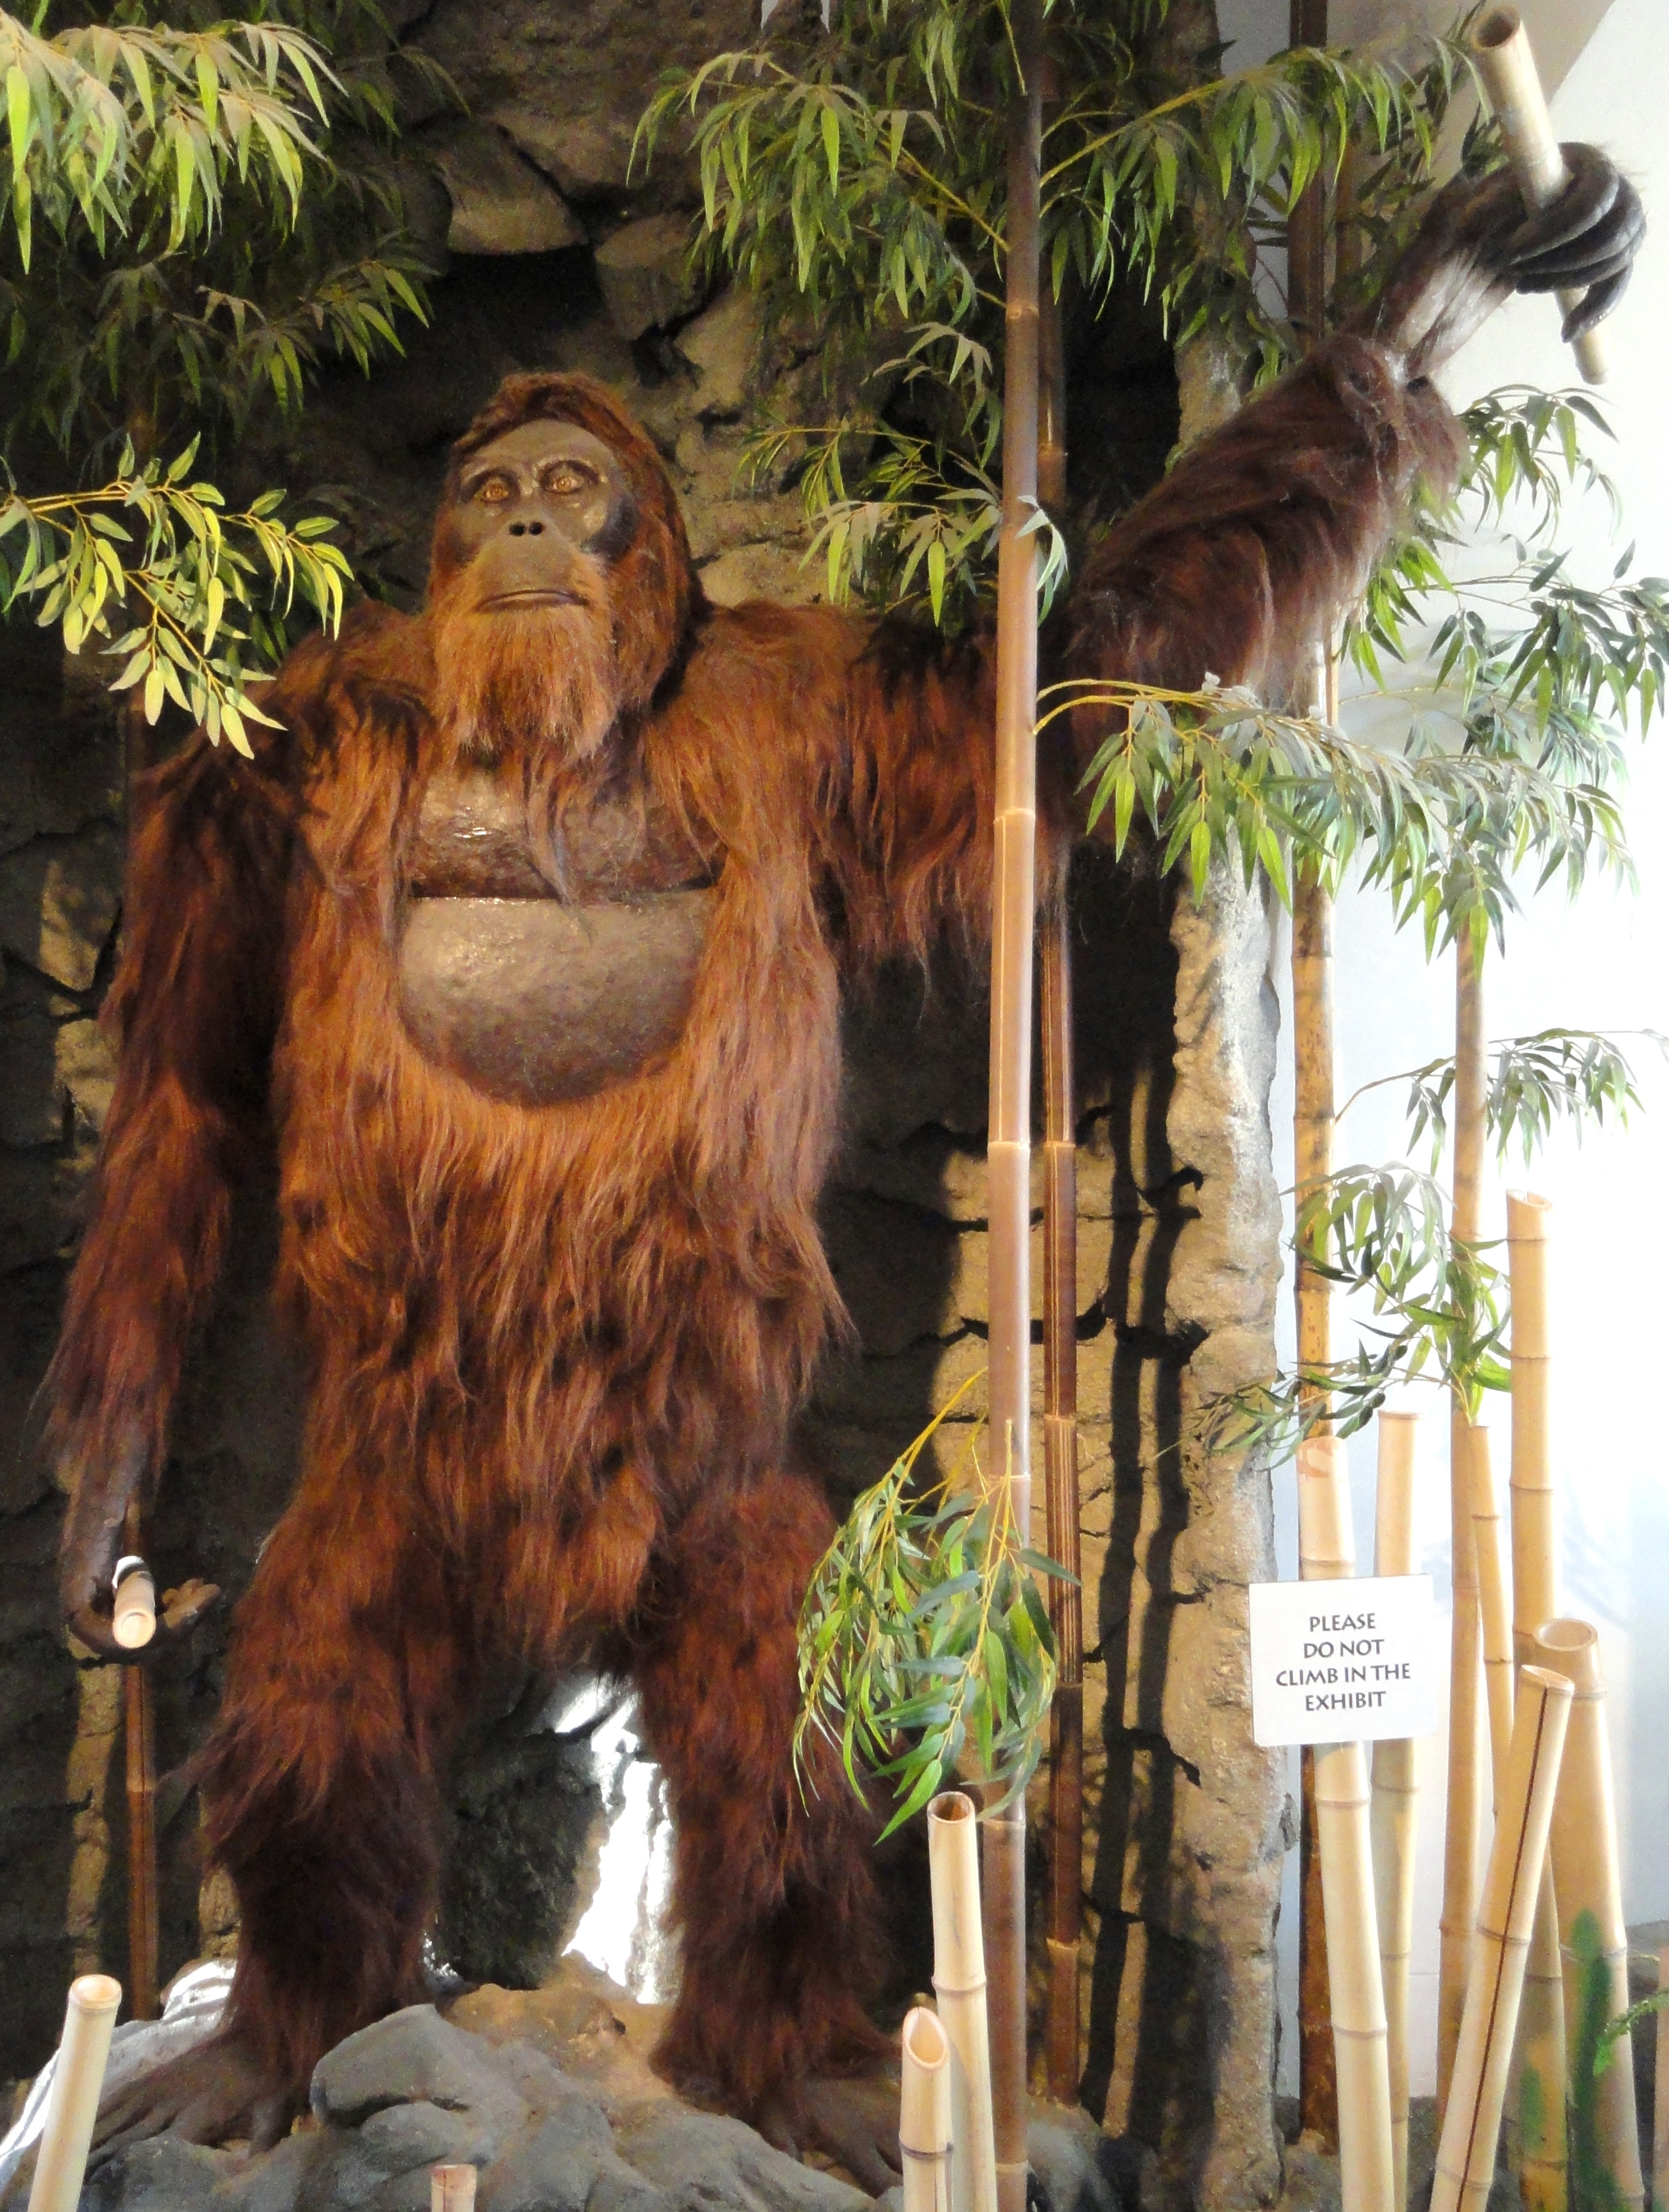 Giant Ape Went Extinct Rather Than Adapt its Diet